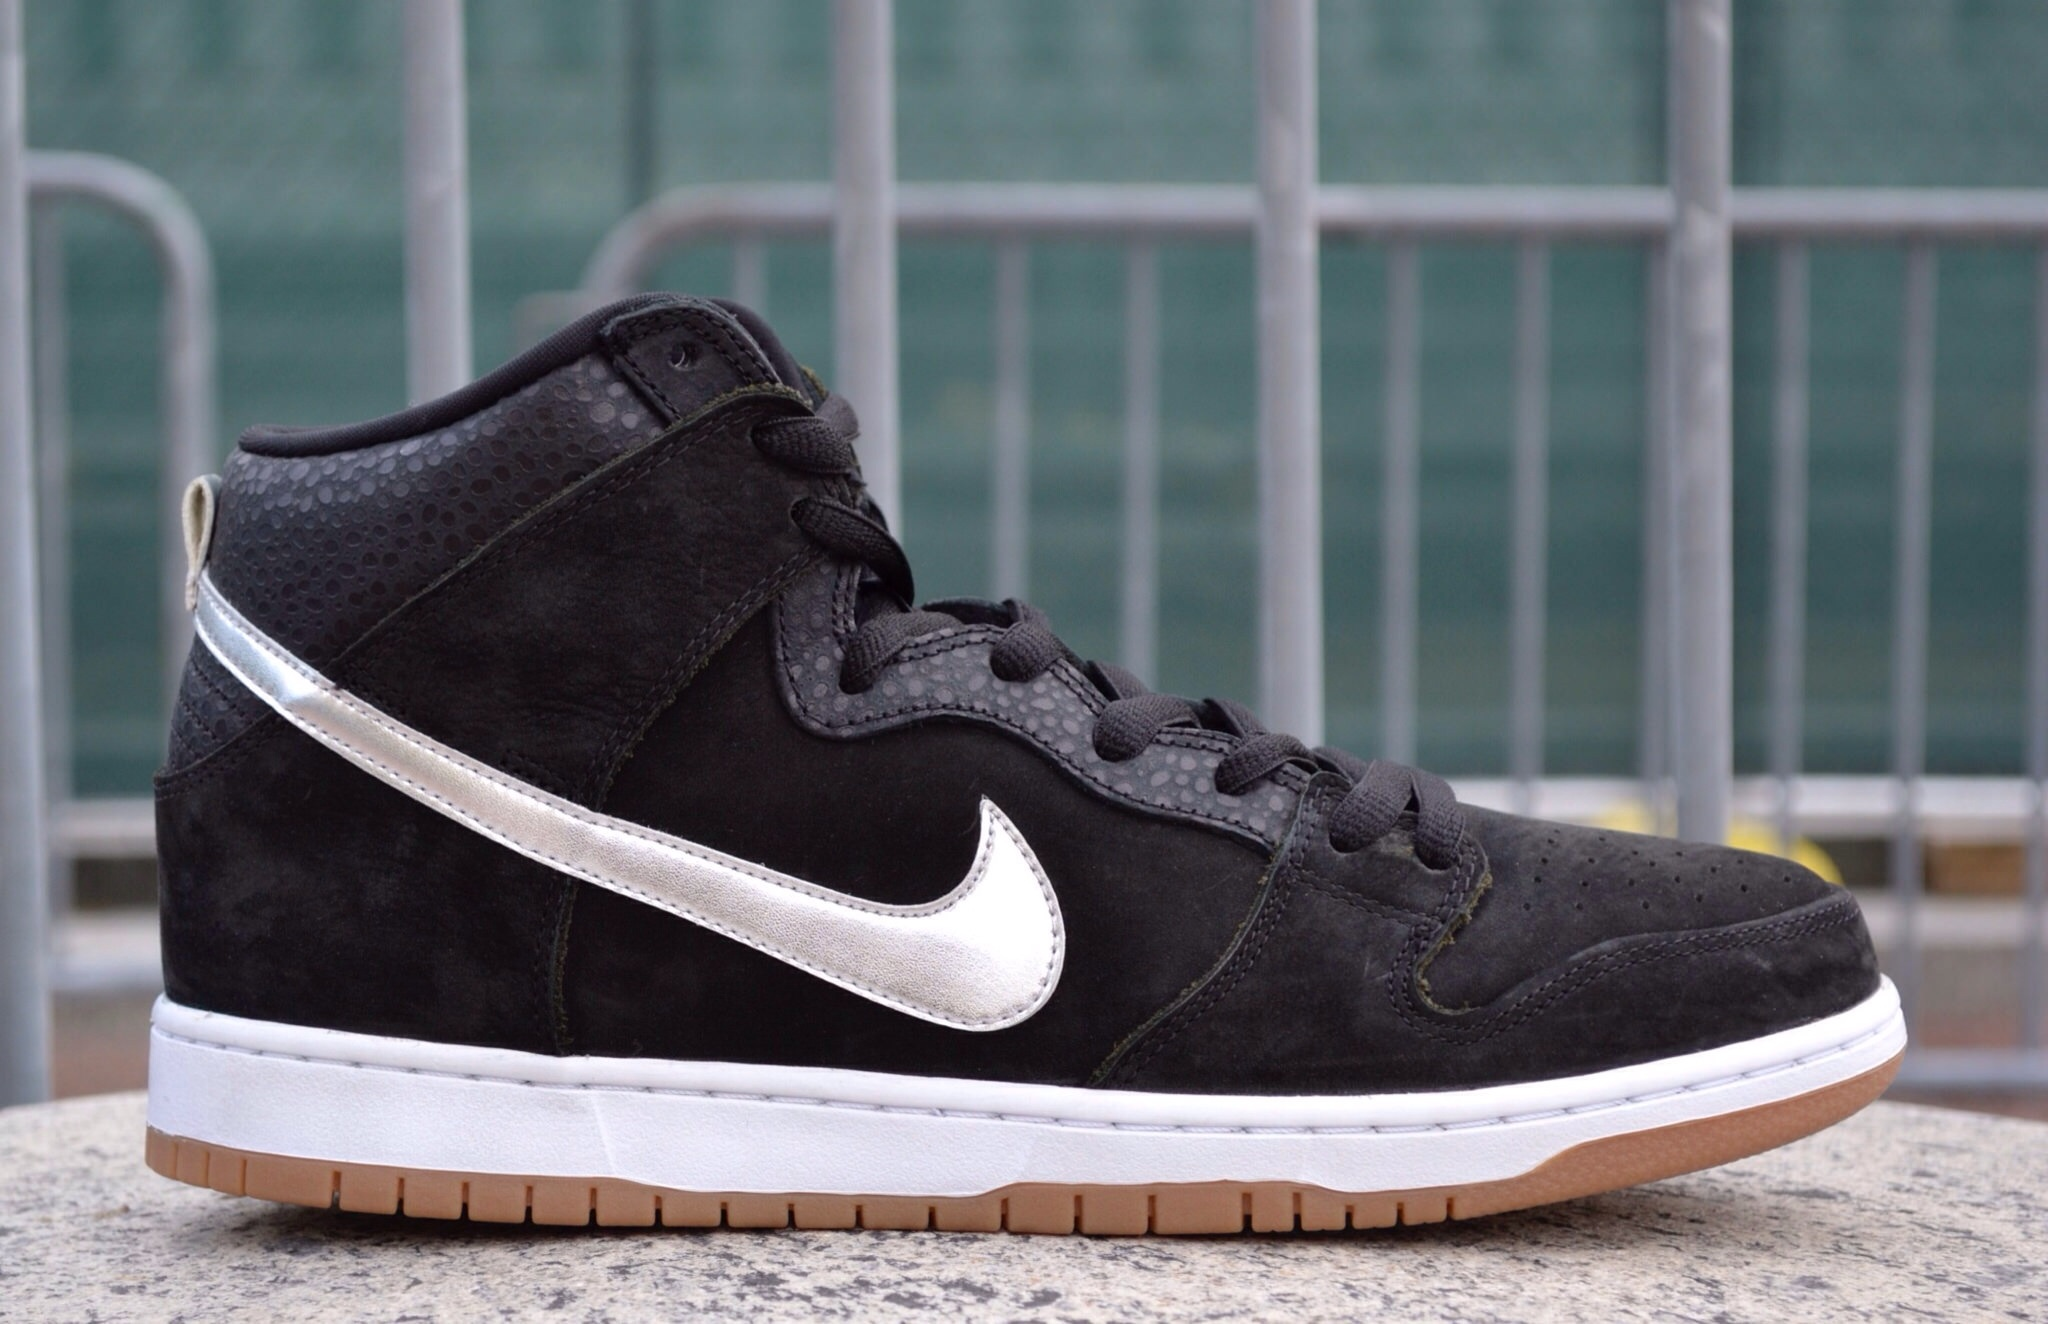 The Nike SB Nigel Sylvester S.O.M.P.(Standing on my pedals) released at a few select Nike SB retailers back on March 8th, 2014.